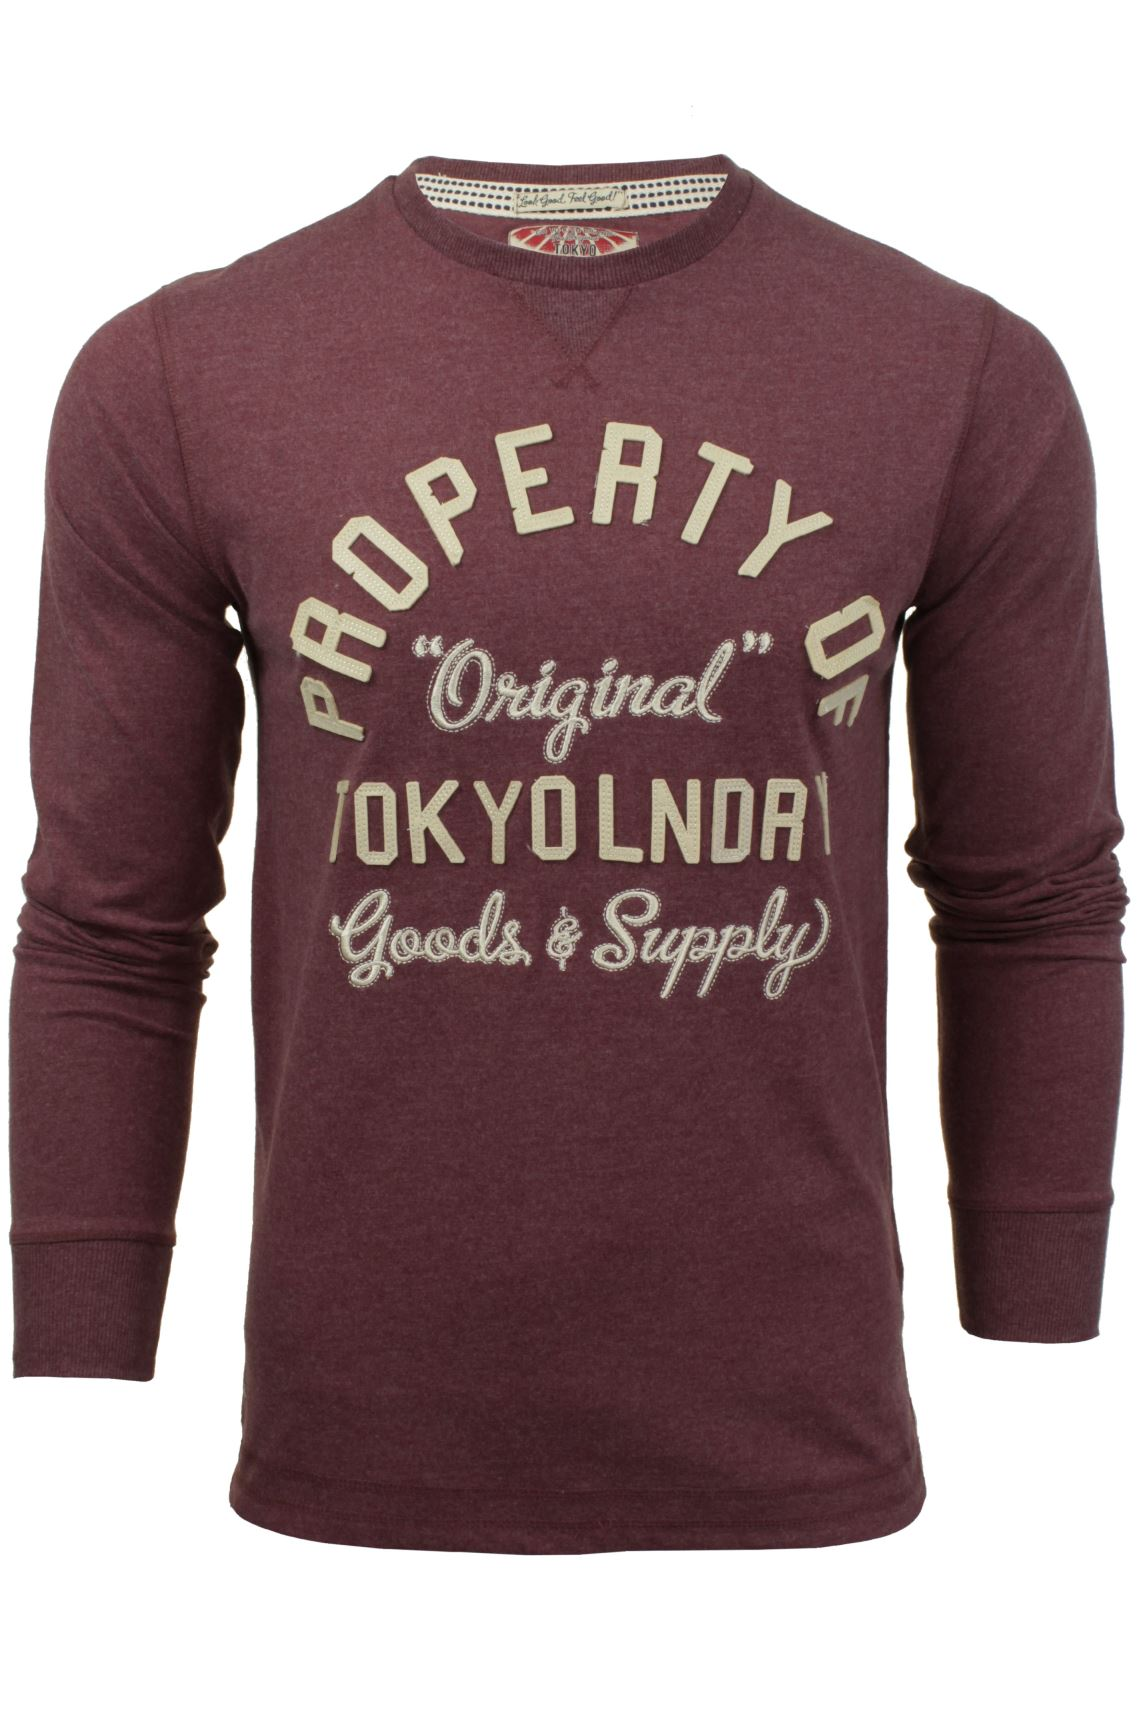 Mens Long Sleeved T-Shirt/ Top by Tokyo Laundry-2